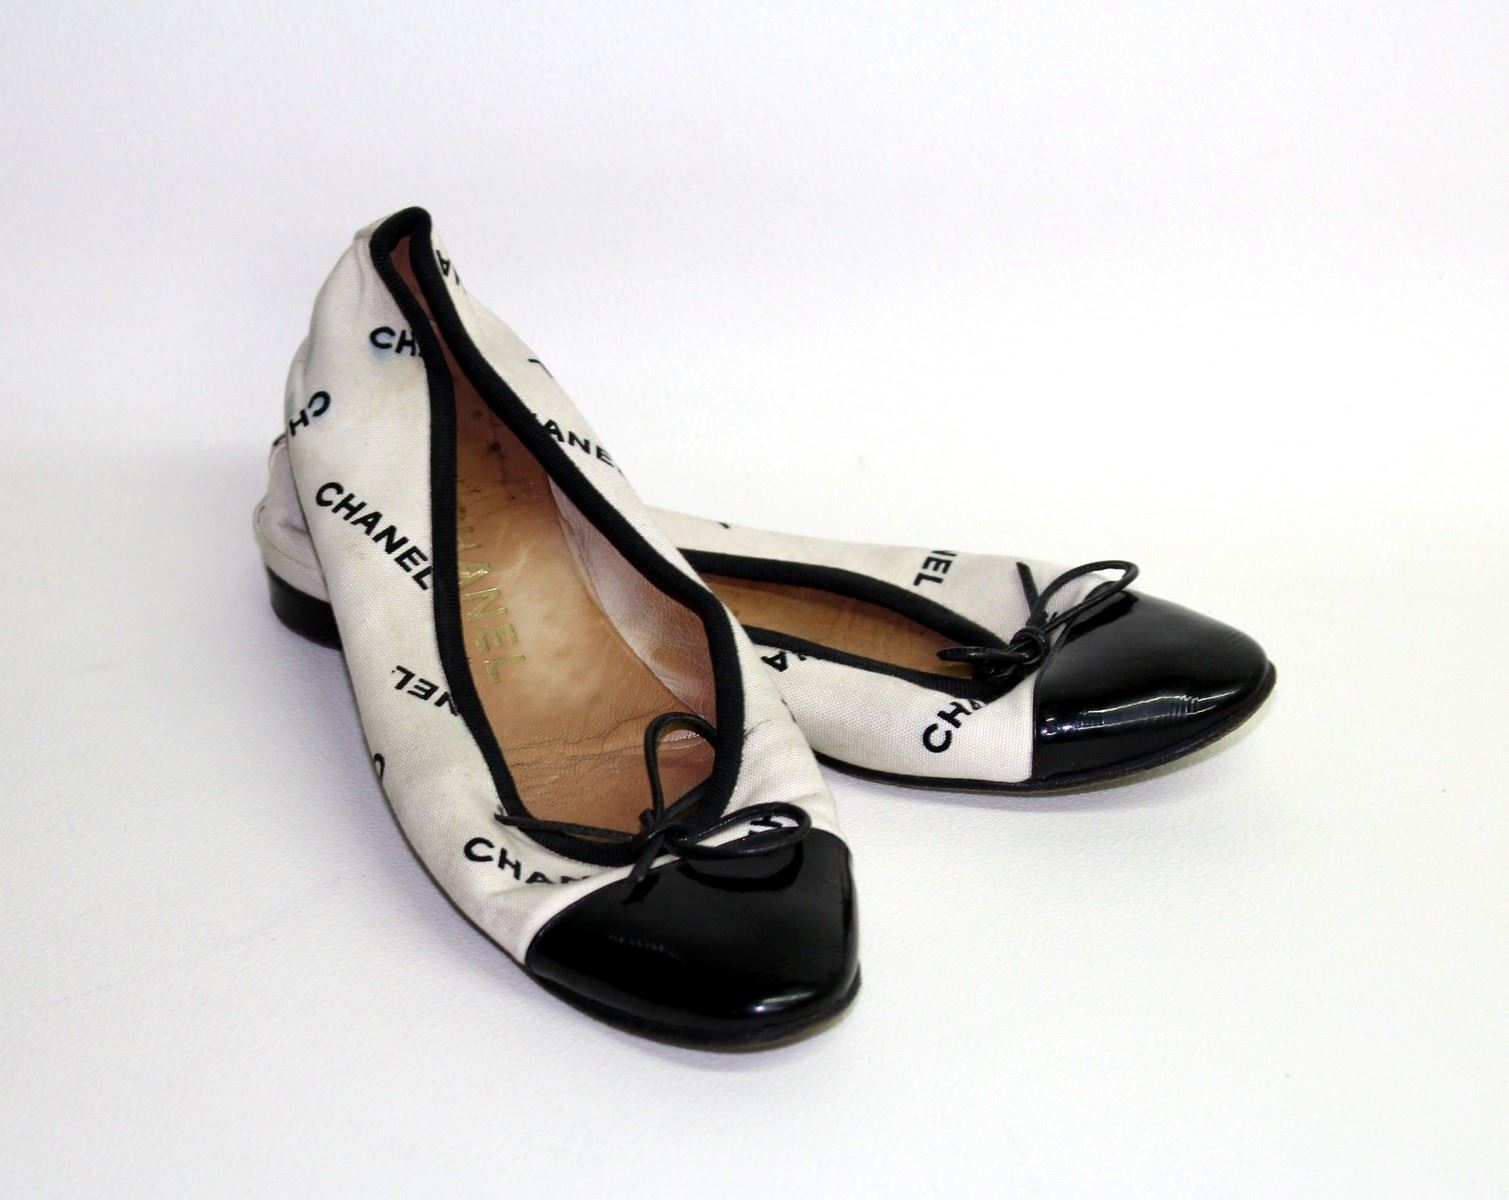 Chanel Ladies Black White Canvas Leather Flat Ballerina Shoes UK5 5 EU38 5 | EBay